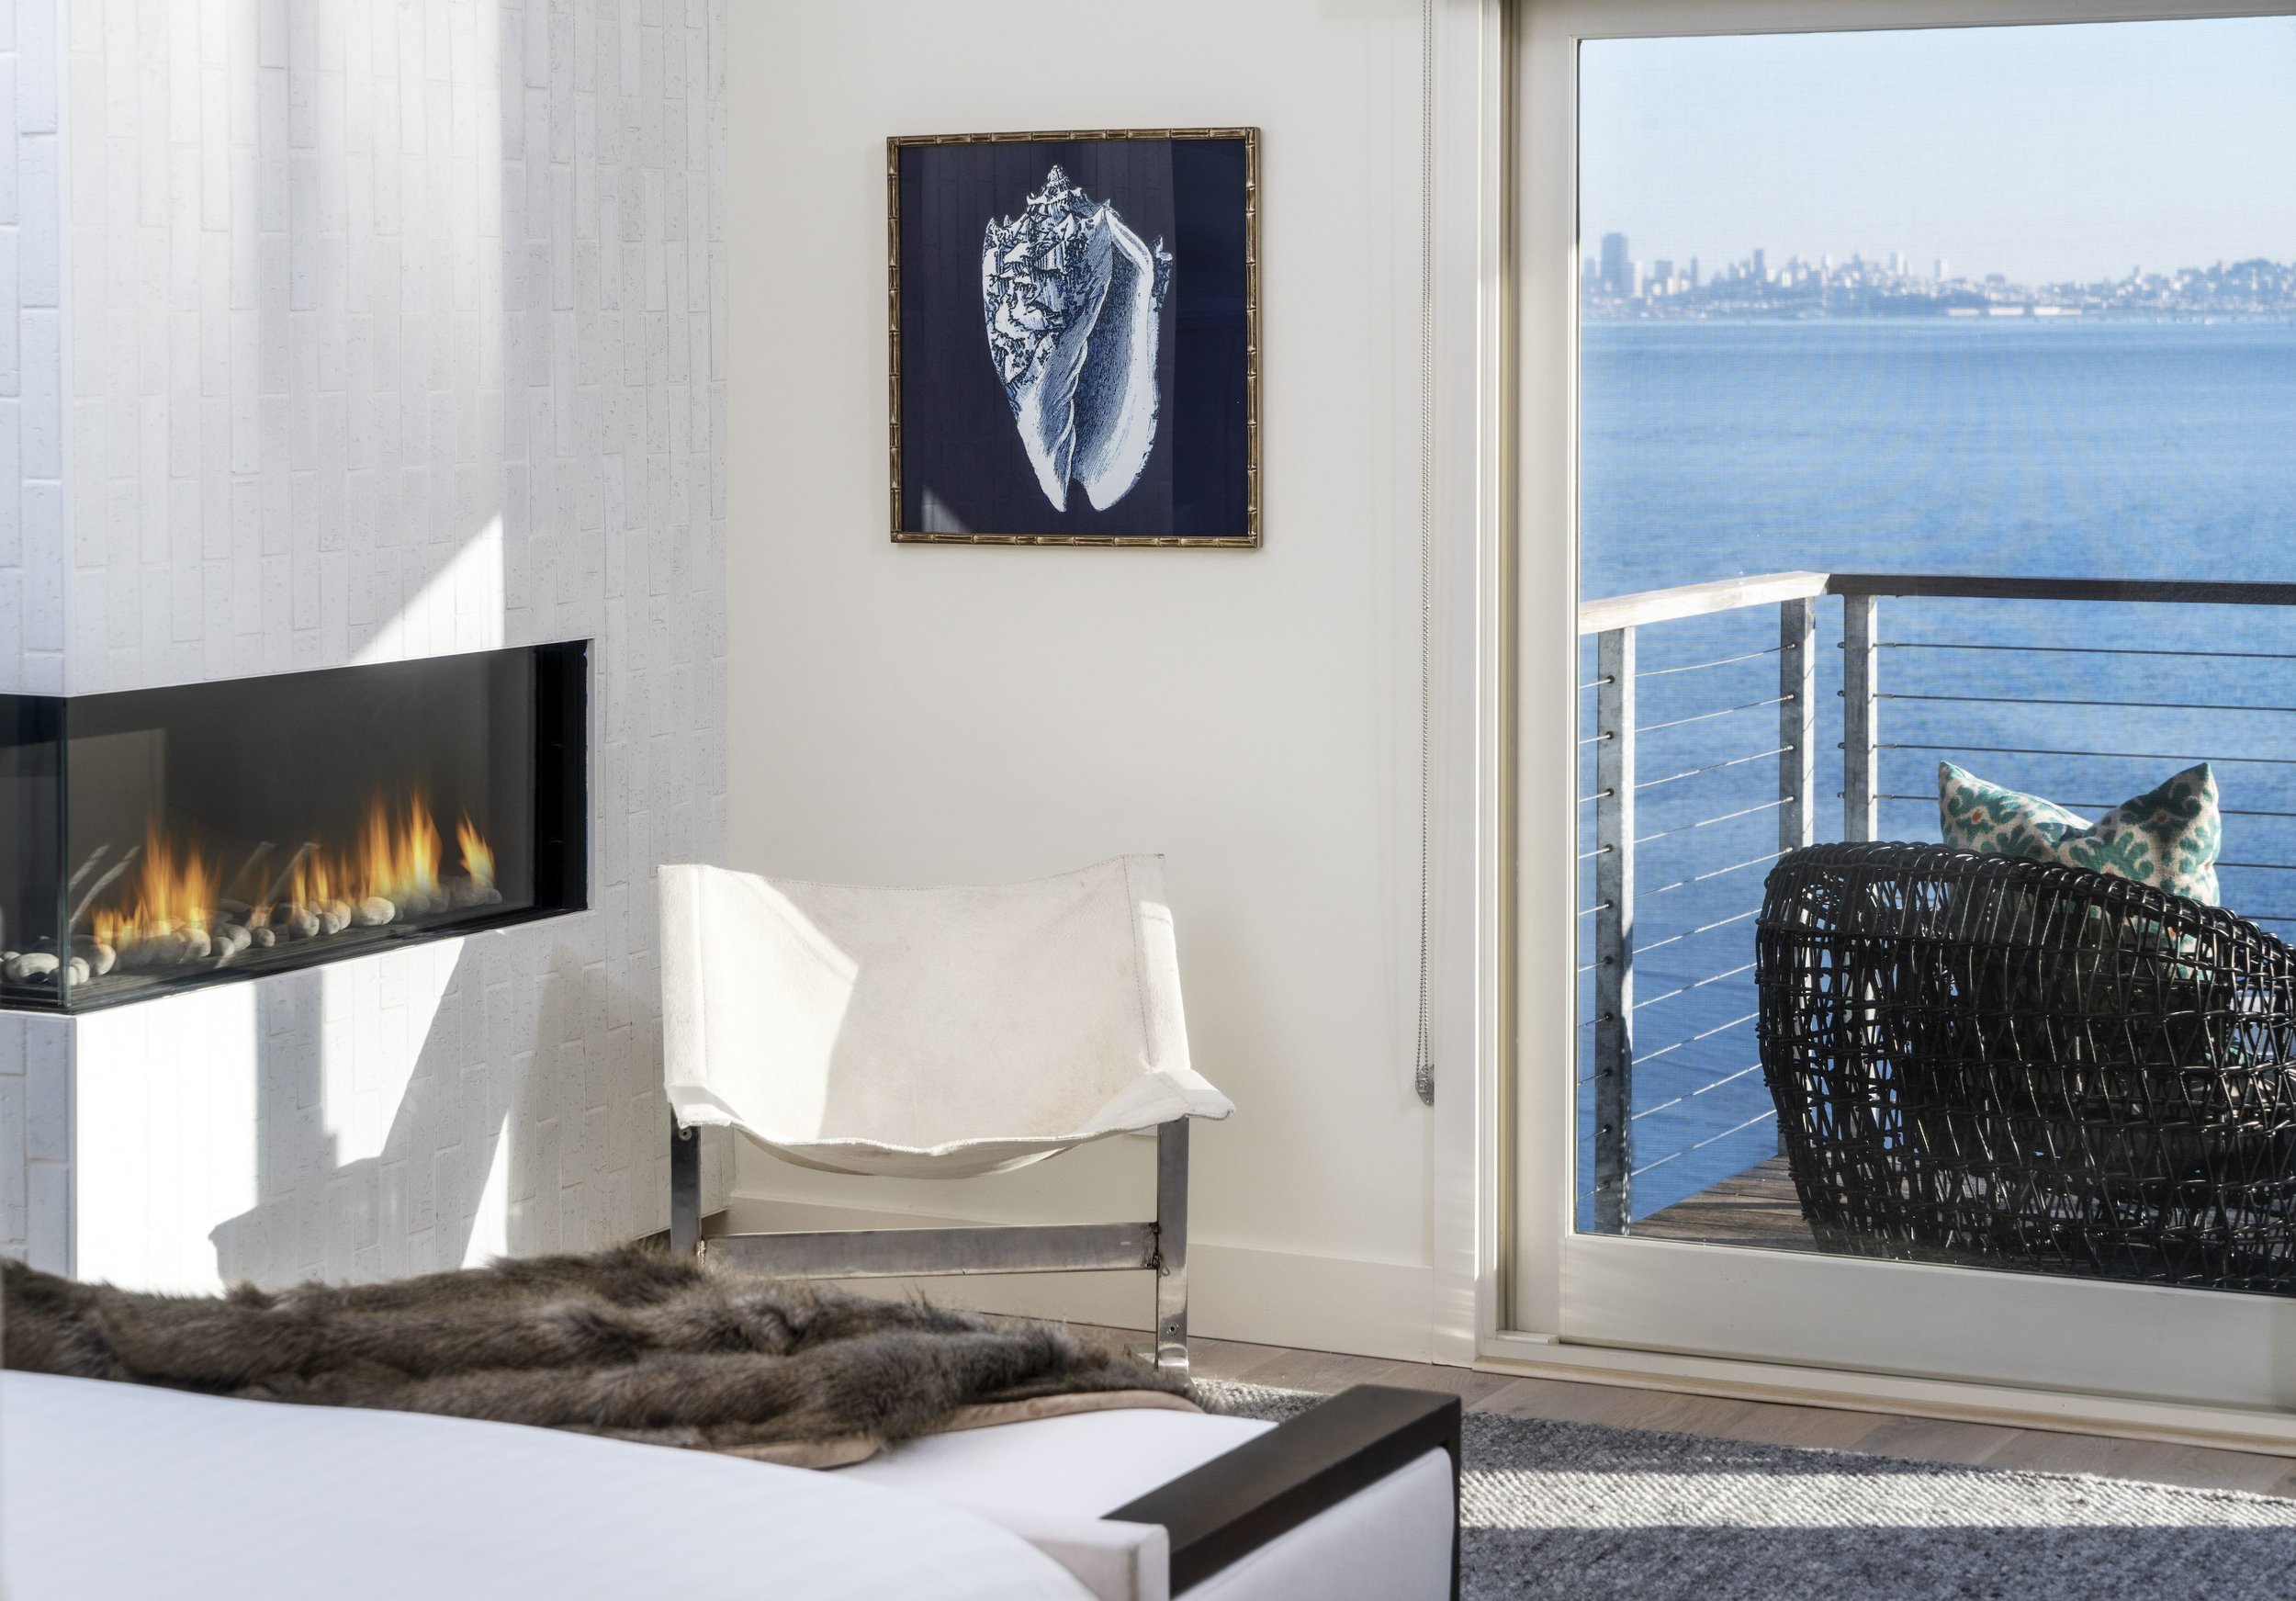 Maximus_The-Pointe-at-Cove_4Bdrm_aMaster-Bedroom-Fireplace-Detail_181207_162632.jpg